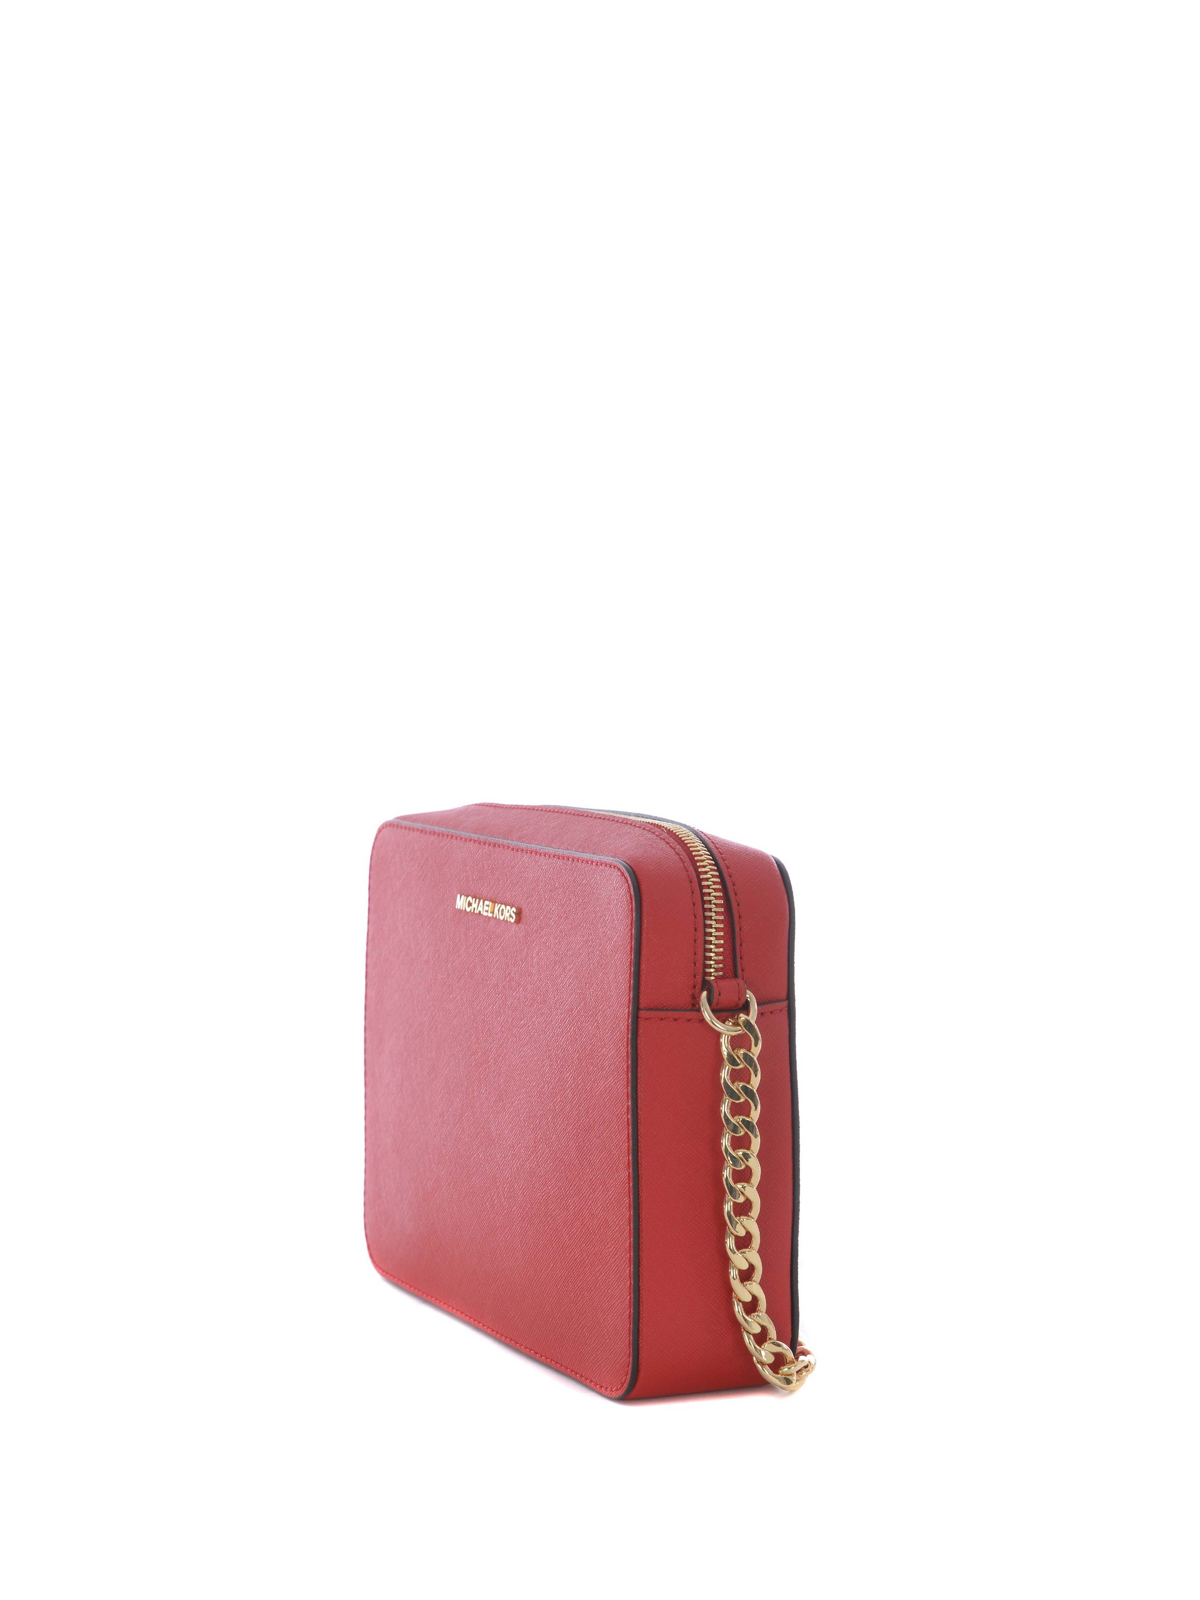 MICHAEL KORS  borse a tracolla online - Tracolla rossa Jet Set Travel large 93e4af6046f